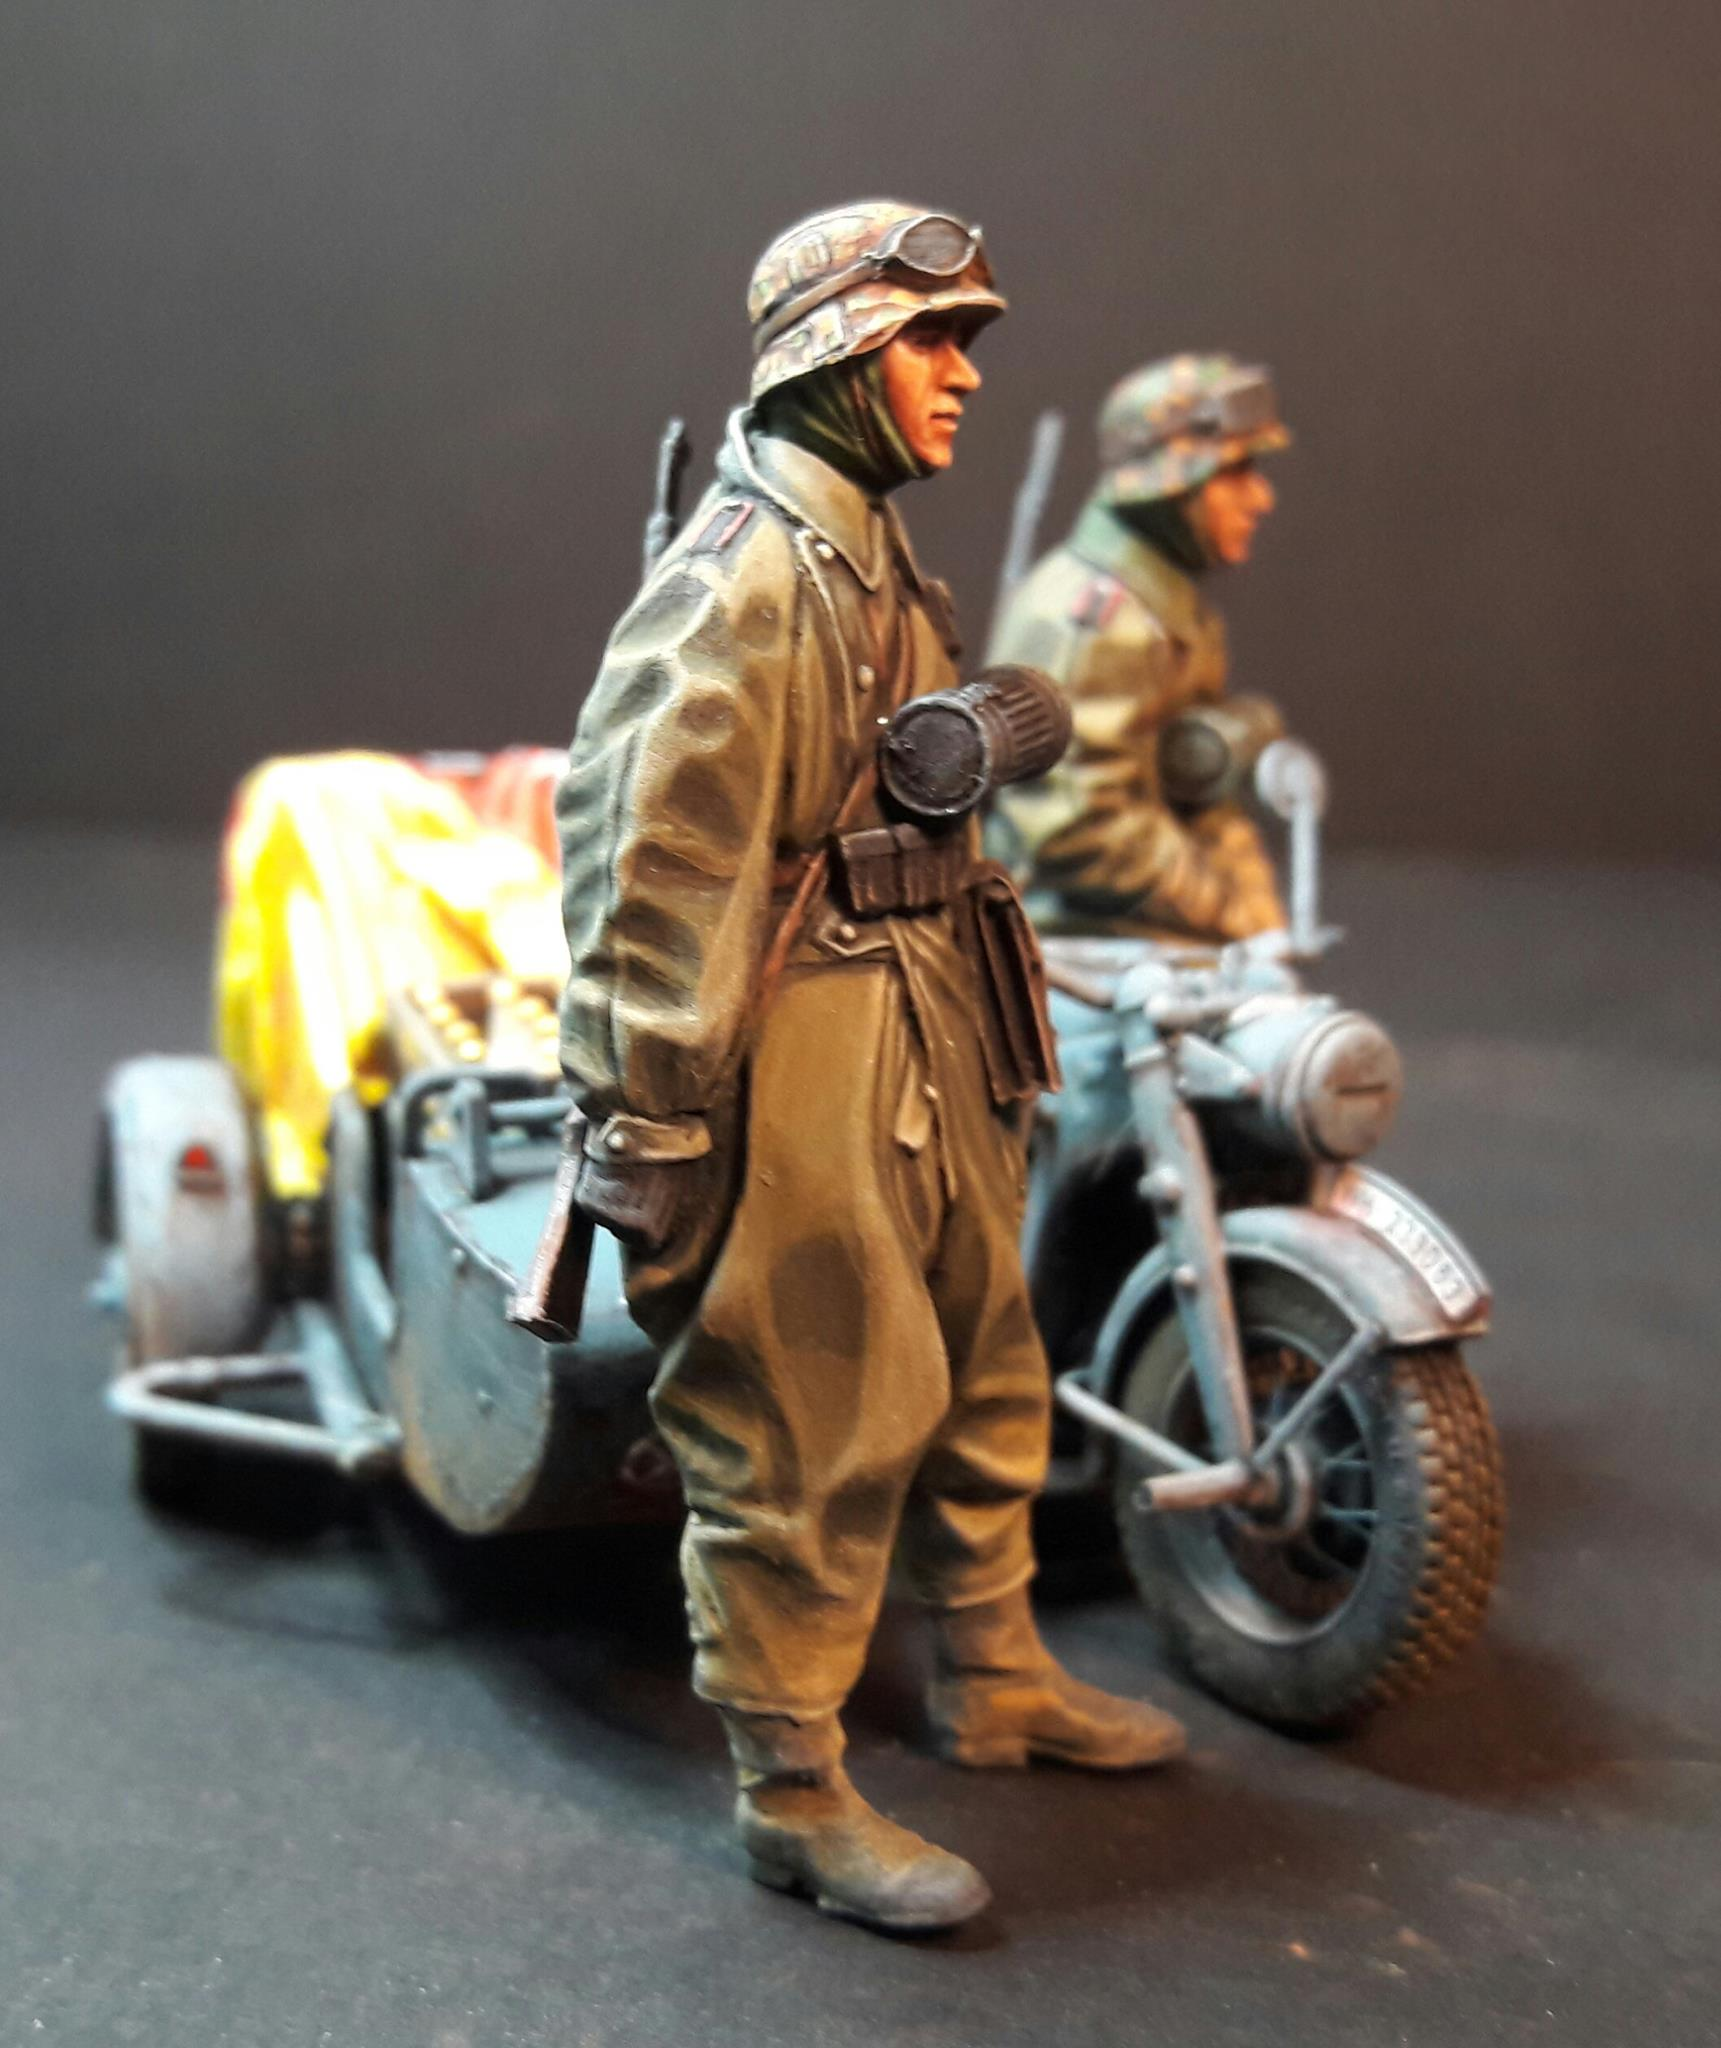 Zündapp KS750 - Sidecar - Great Wall Hobby + figurines Alpine - 1/35 - Page 5 5398541988582710211786806240153742199206o